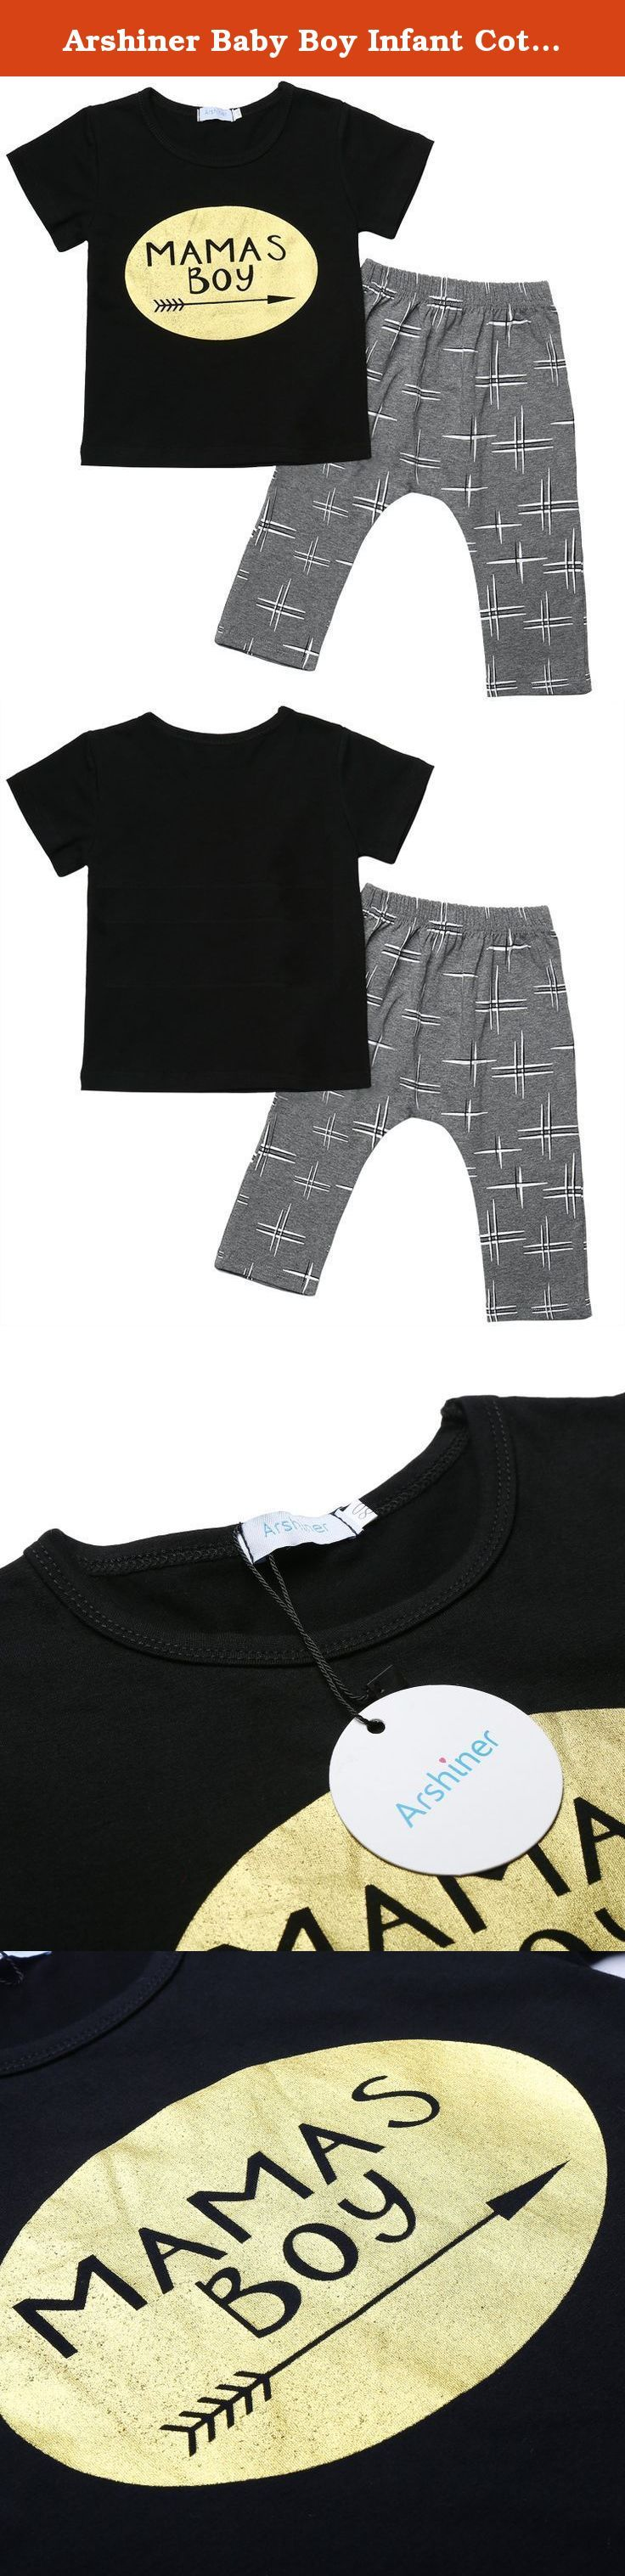 """Arshiner Baby Boy Infant Cotton Letters Printed T-shirt and Pants Outfits, Black, 80-Age(1-2Years). Size: There are 4 sizes (70,80,90,100) available for the following listing. please allow 1-2cm differs due to manual measurement, thanks (All measurement in cm and please note 1 cm=0.39 inch) *Top's Measurement 70-Age(6Months-1Year)------Chest 20.7""""------Middle Back Length 12.9"""" 80-Age(1-2Years)------Chest 21.8""""------Middle Back Length 13.7"""" 90-Age(2-3Years)------Chest 23""""------Middle Back..."""